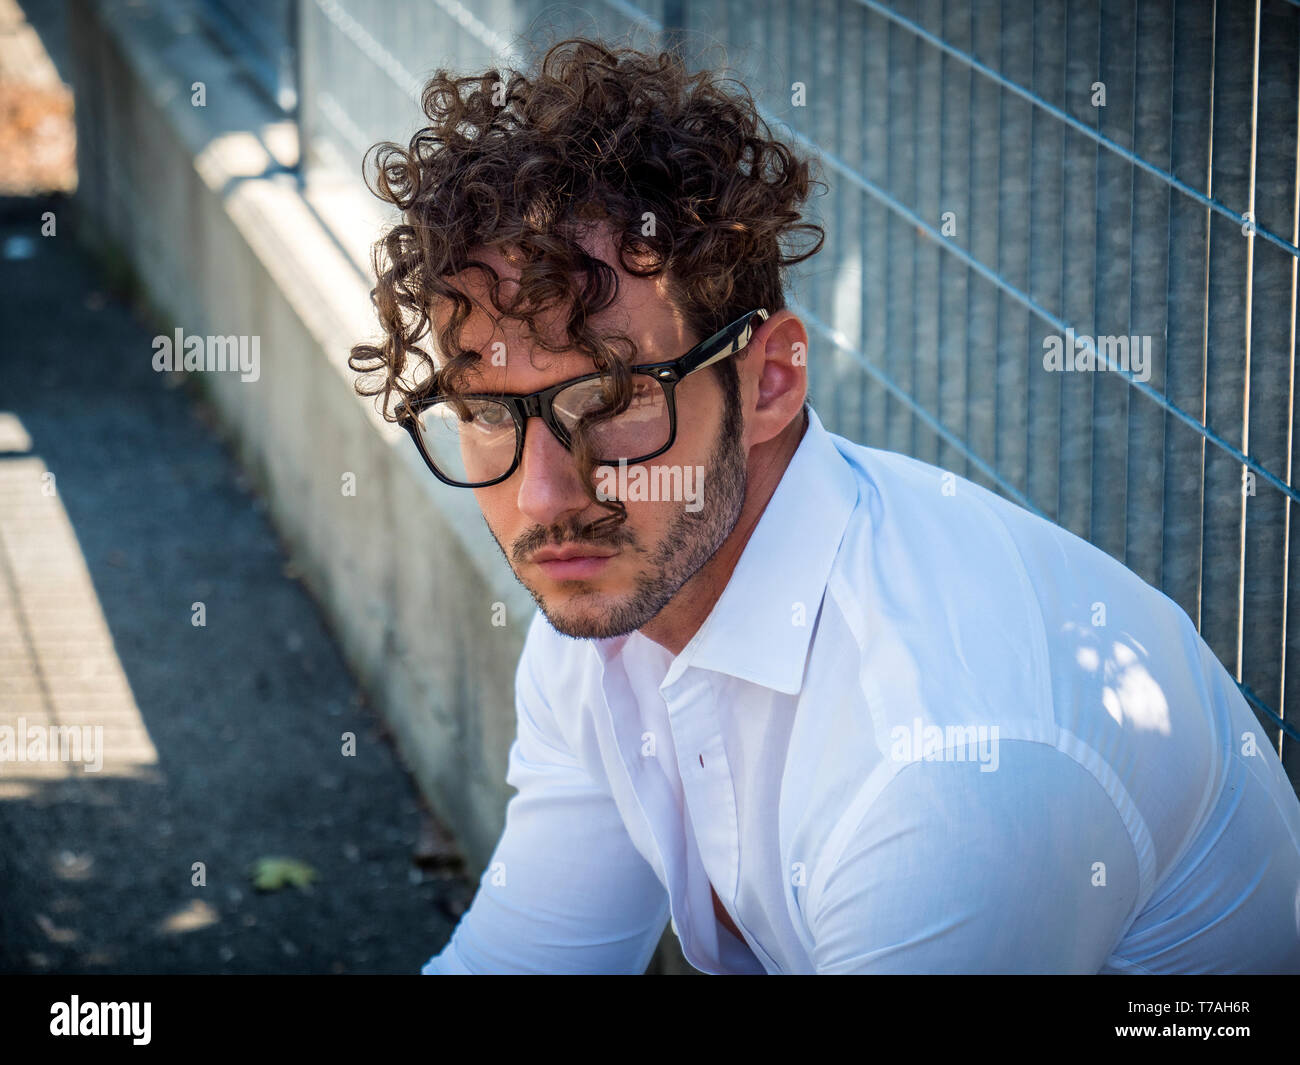 One handsome man in city setting wearing glasses Stock Photo